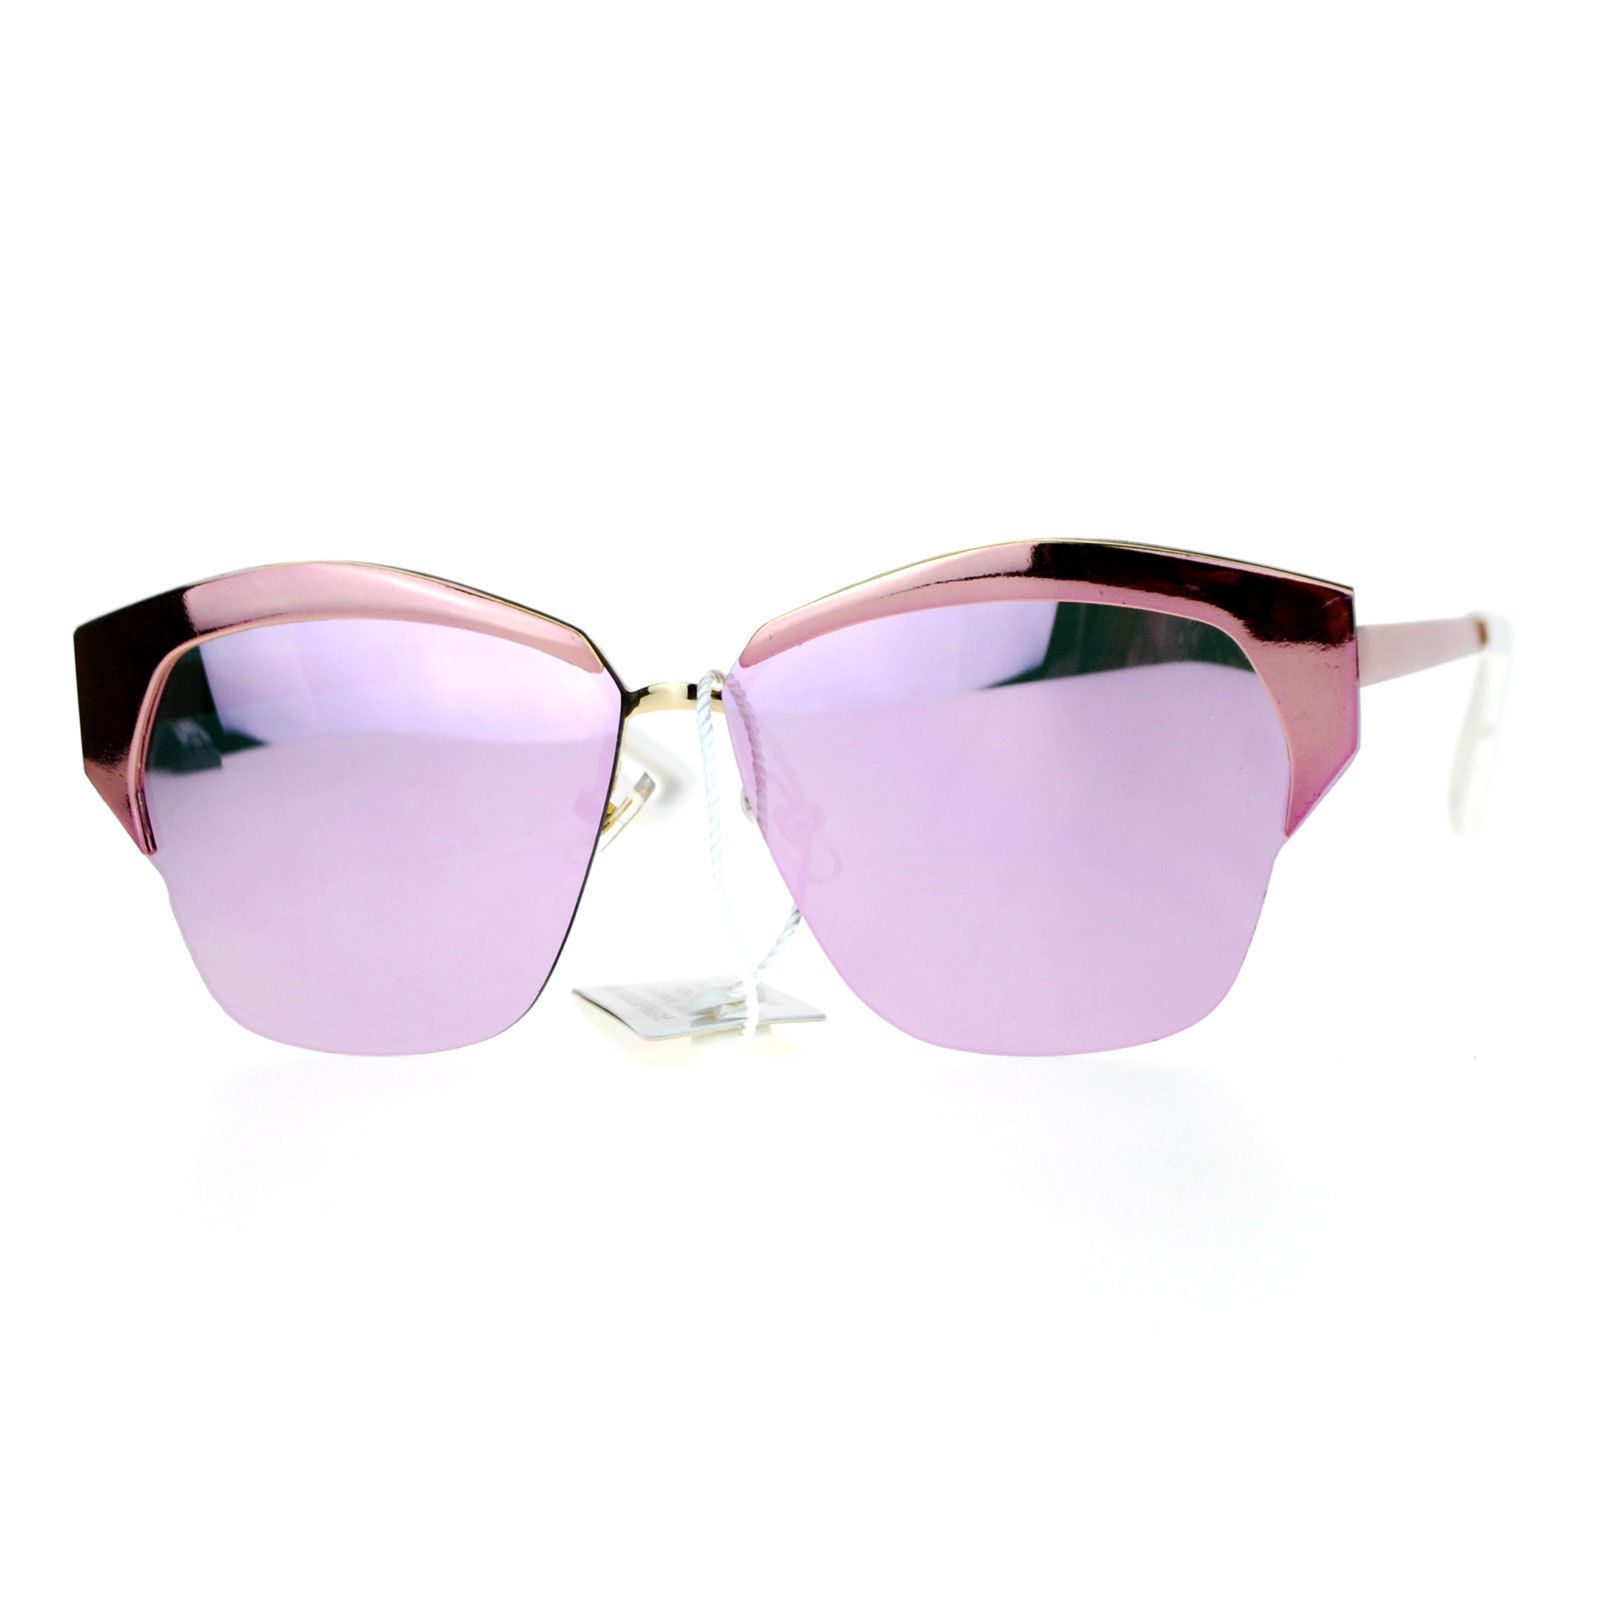 Womens Designer Sunglasses Half Rim Metal Top Trendy Flat Lens Shades